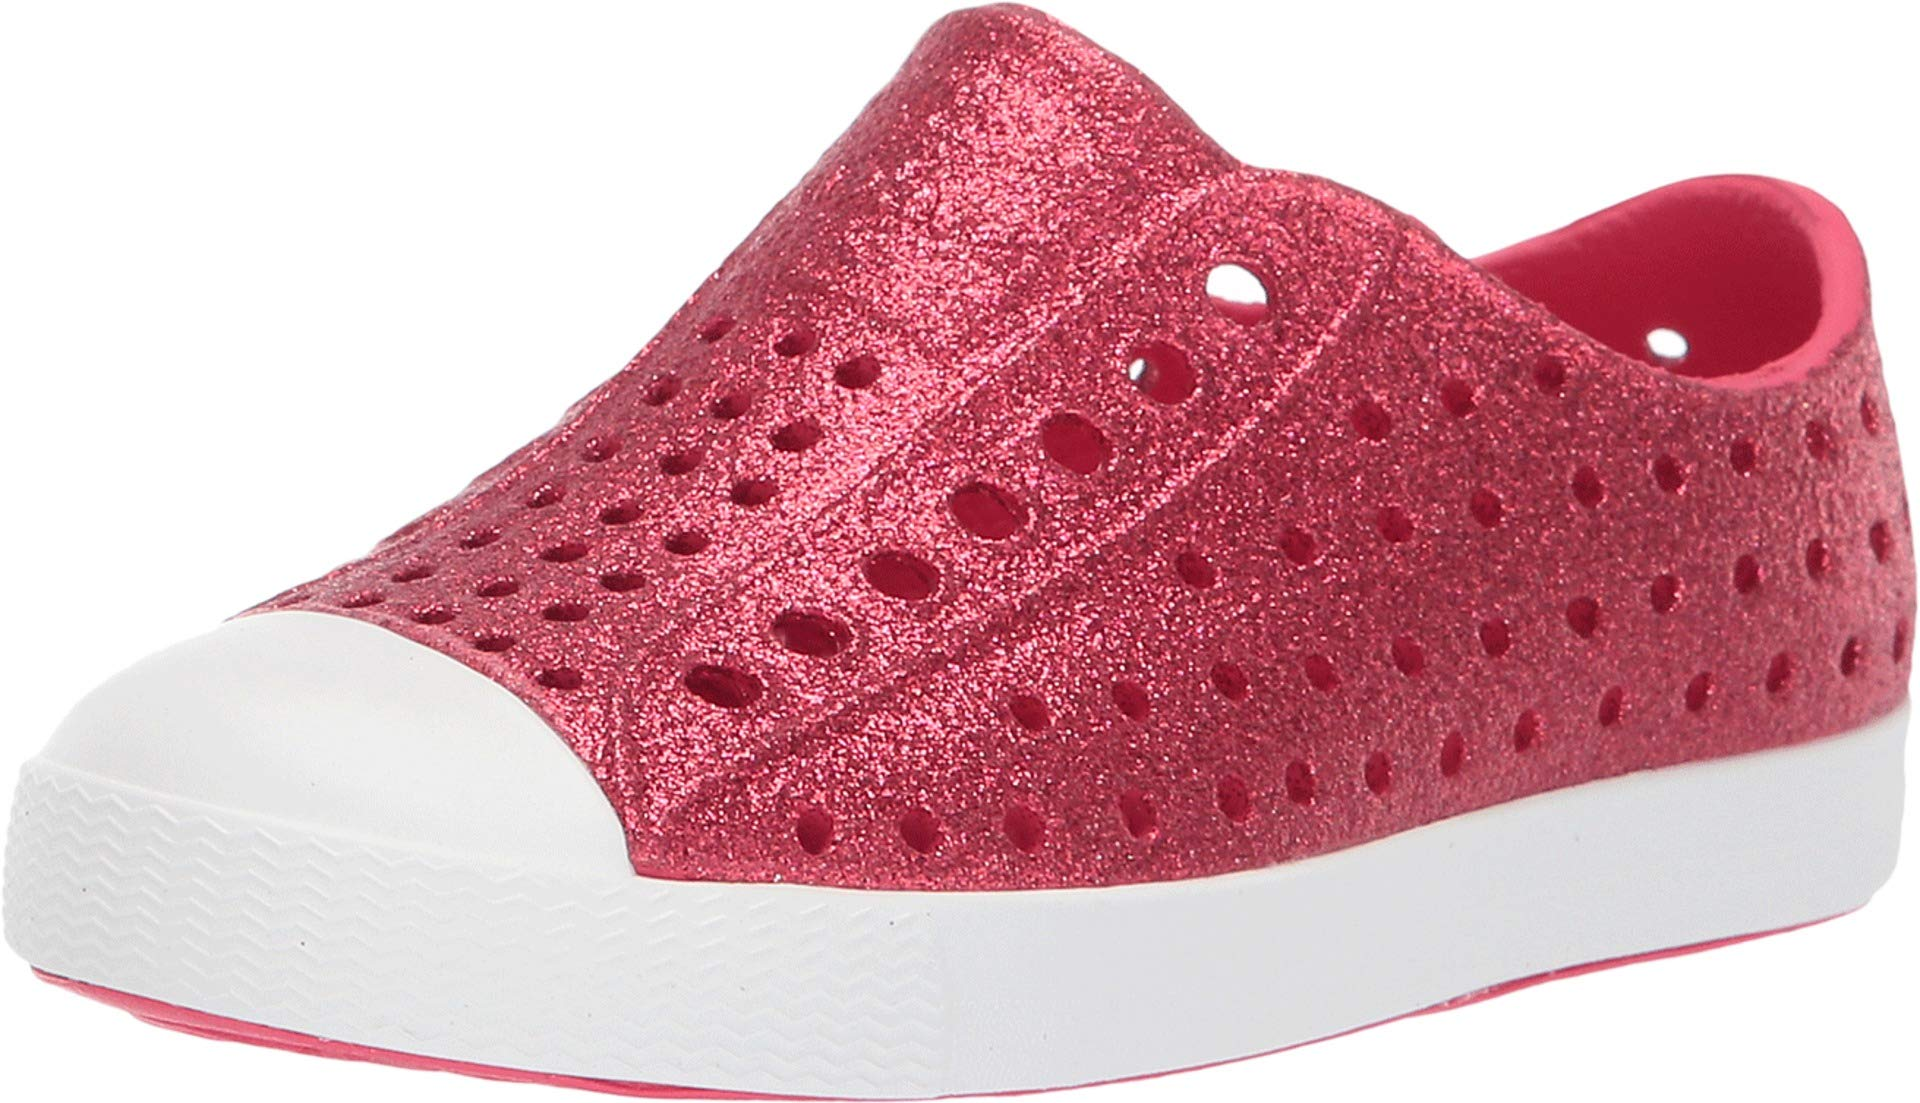 Native Kids Shoes Baby Girl's Jefferson Bling Glitter (Toddler/Little Kid) Sakura Pink Bling Glitter/Shell White 4 M US Toddler